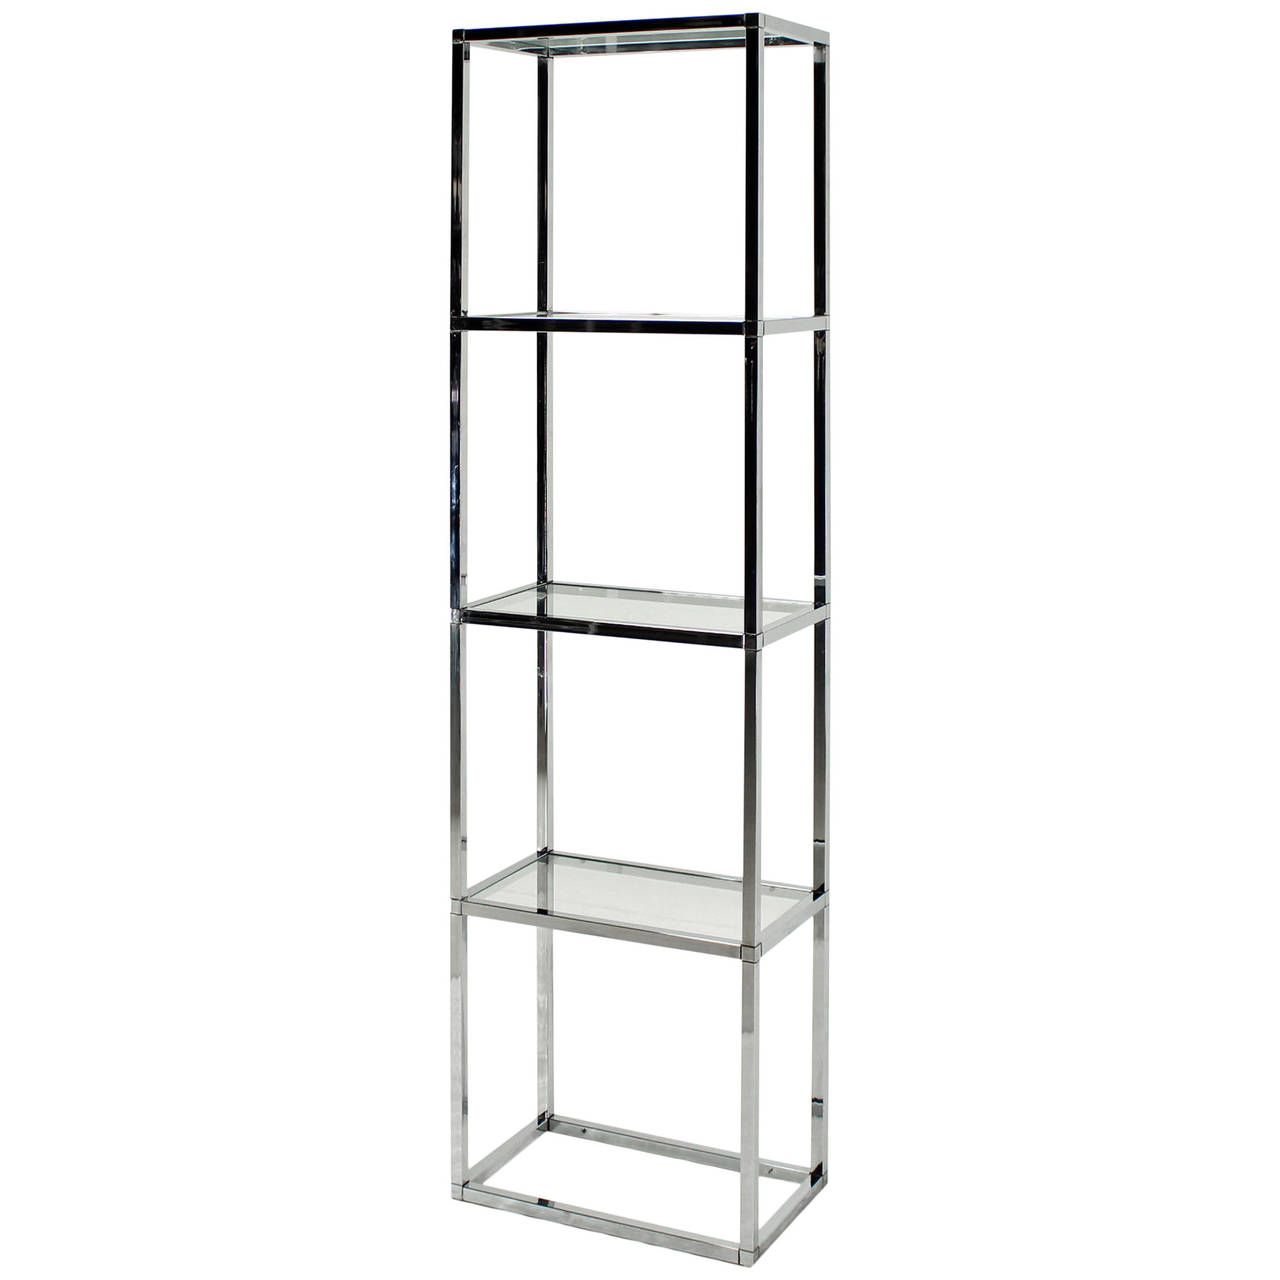 Groovy Narrow And Tall Mid Century Modern Chrome And Glass Etagere Home Remodeling Inspirations Basidirectenergyitoicom